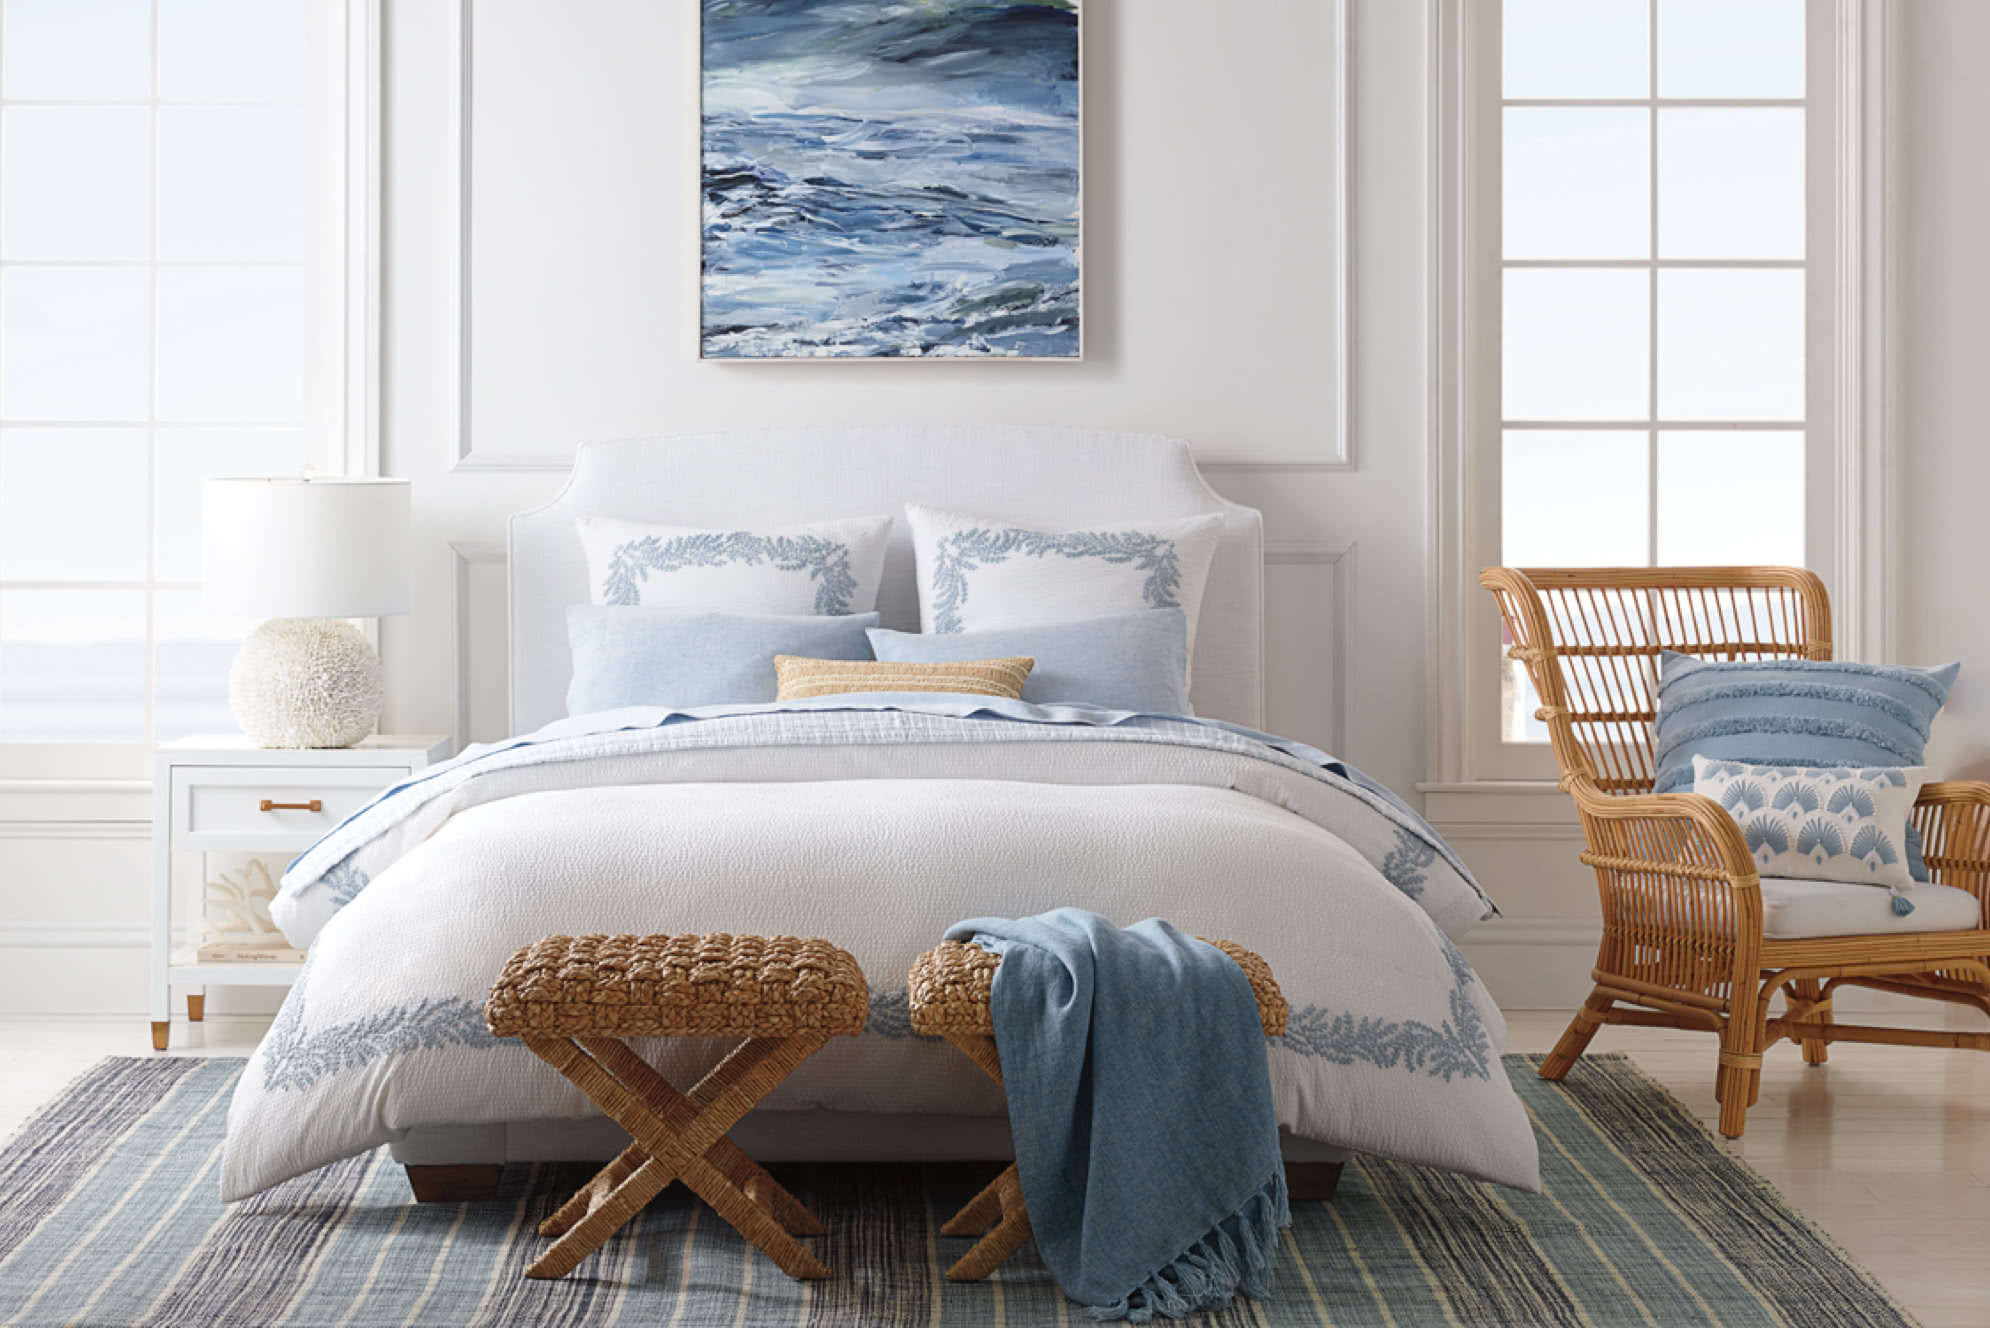 Blue and white dreamy coastal bedroom - Serena and Lily.